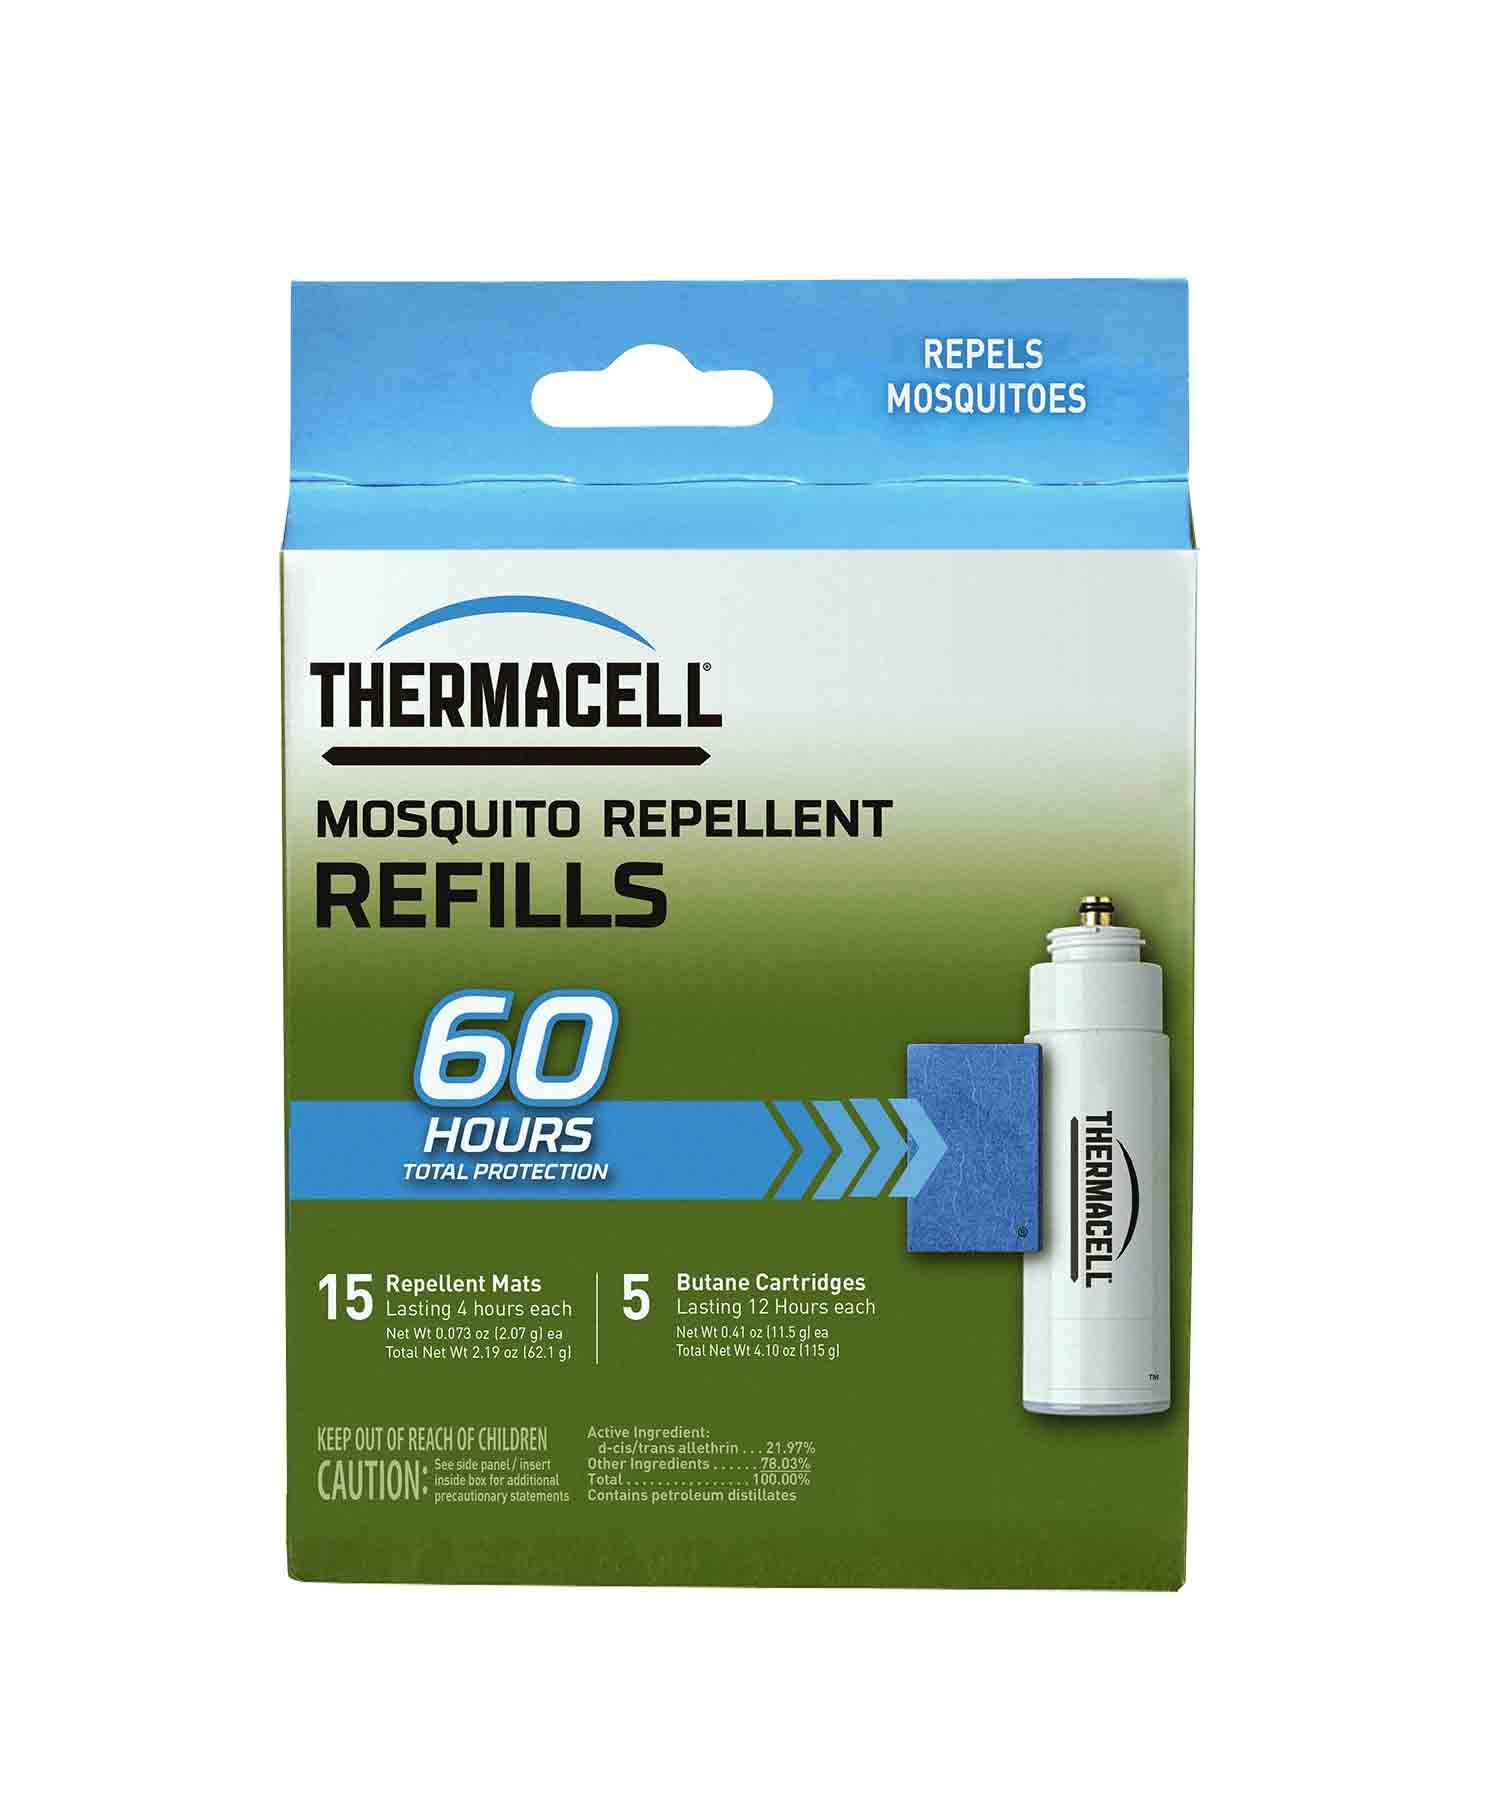 Thermacell R-5 Mosquito Repeller Refill,60 HourPack (15 Repellent Mats and 5 Fuel Cartridges)